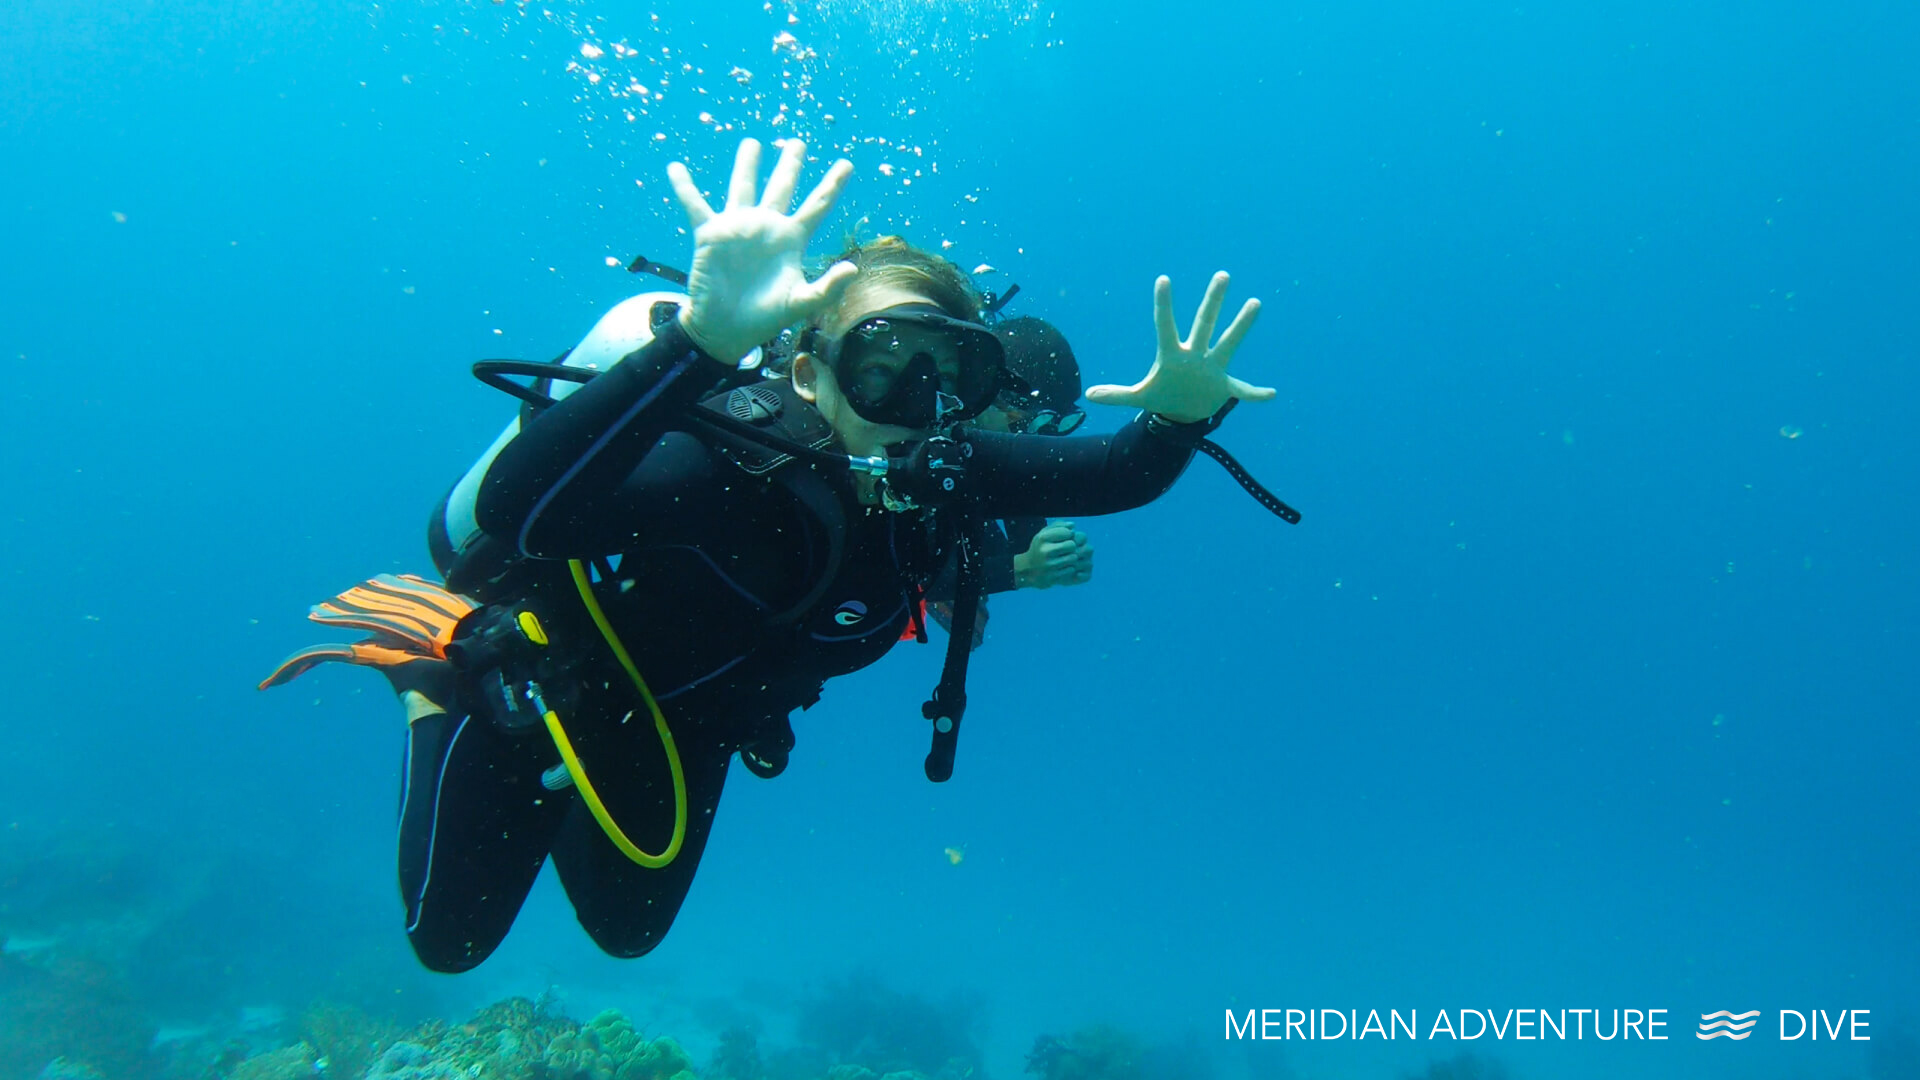 Raja Ampat diving with Meridian Adventure Dive.